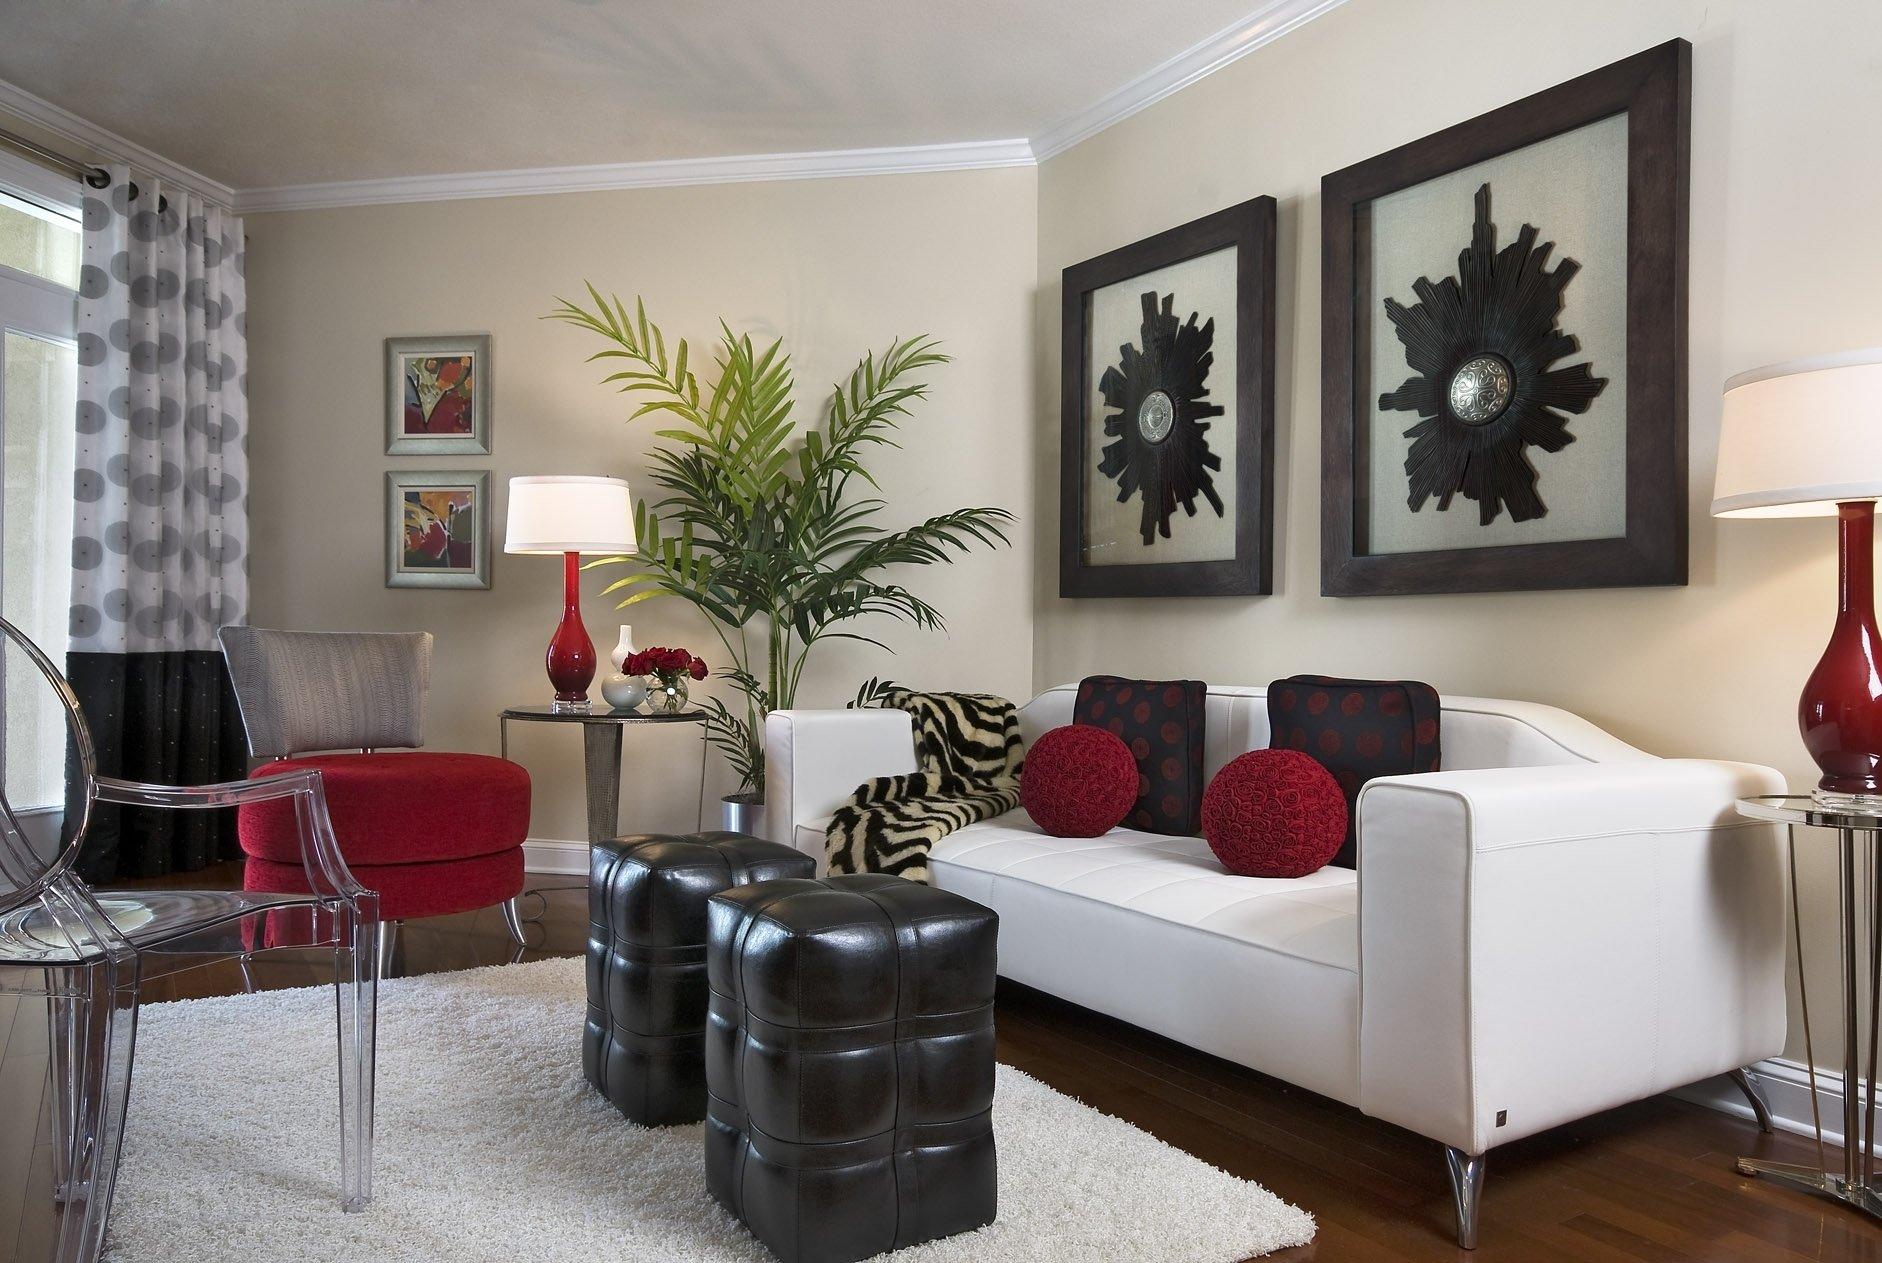 10 Attractive Decorating Ideas For Small Living Room design living room for small spaces 1 2020